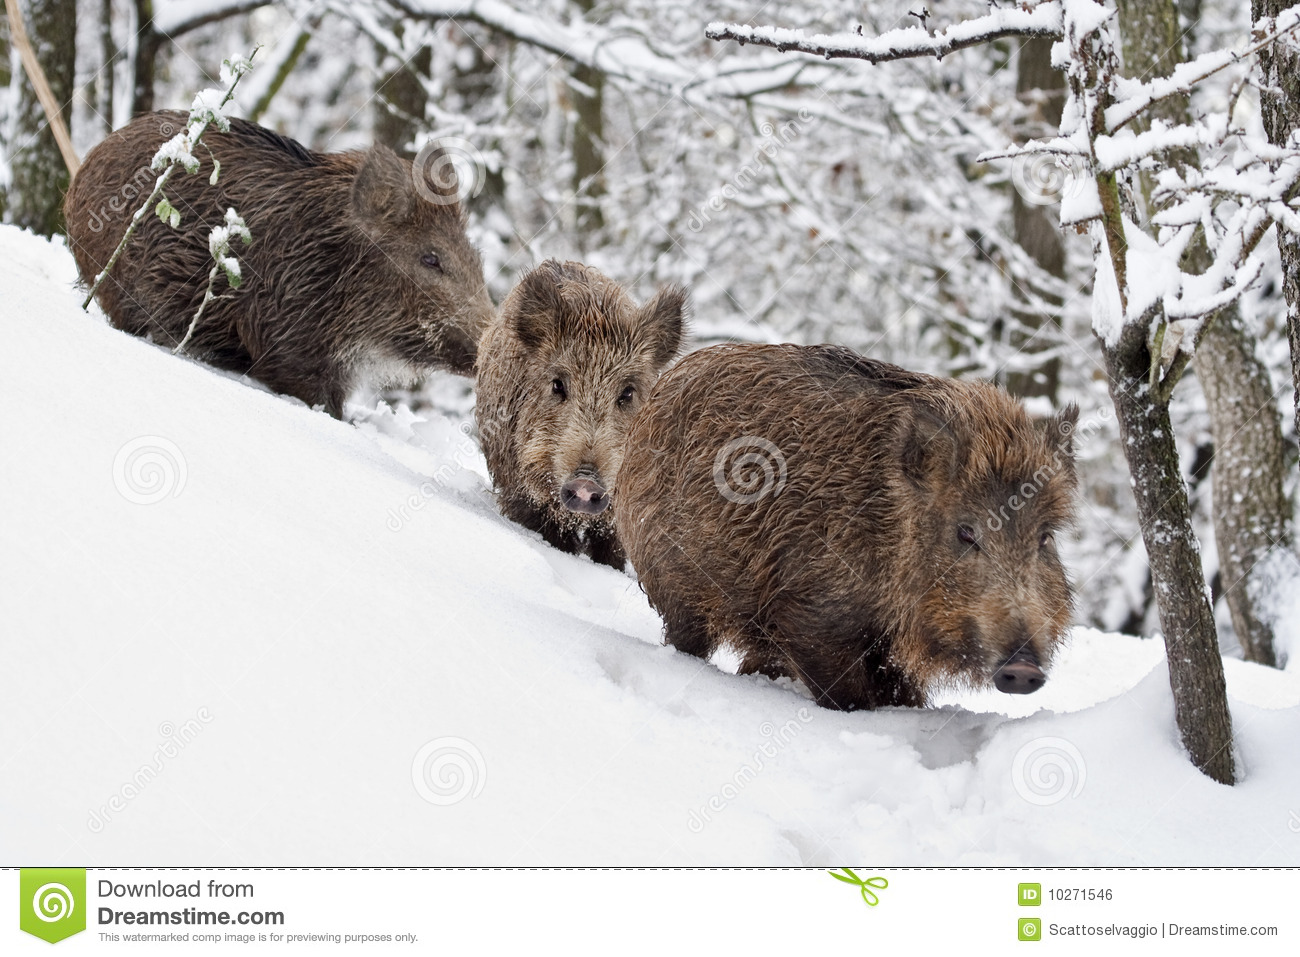 Young wild boar walking in the snow (Sus scrofa)